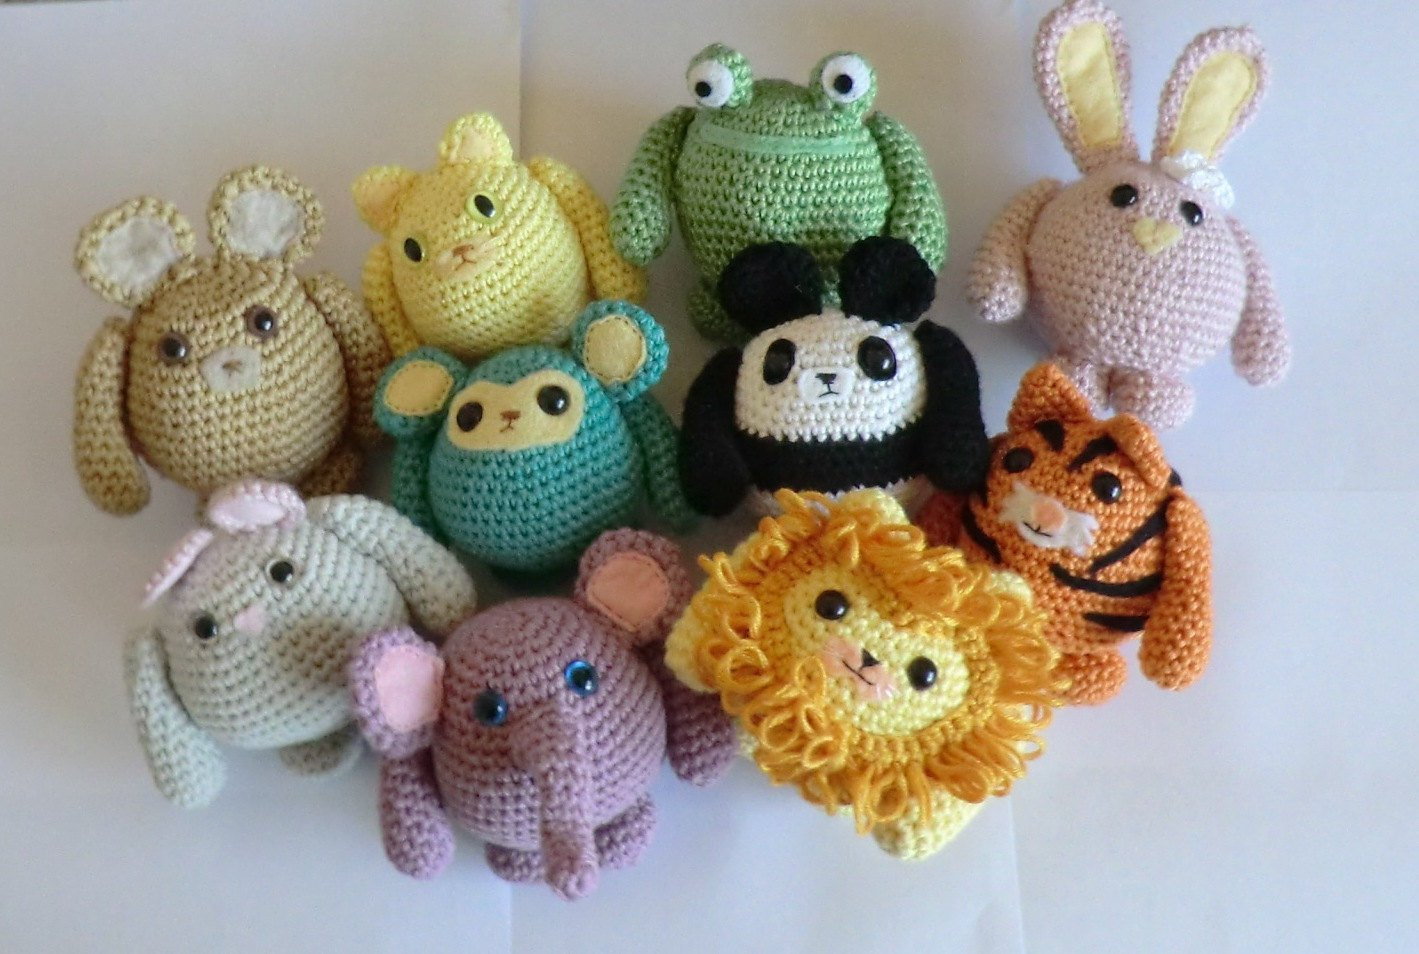 Animal Amigurumi to Crochet Awesome Fat Friends Animal Amigurumi Pdf Crochet Patterns All 10 Cat Of Top 47 Photos Animal Amigurumi to Crochet